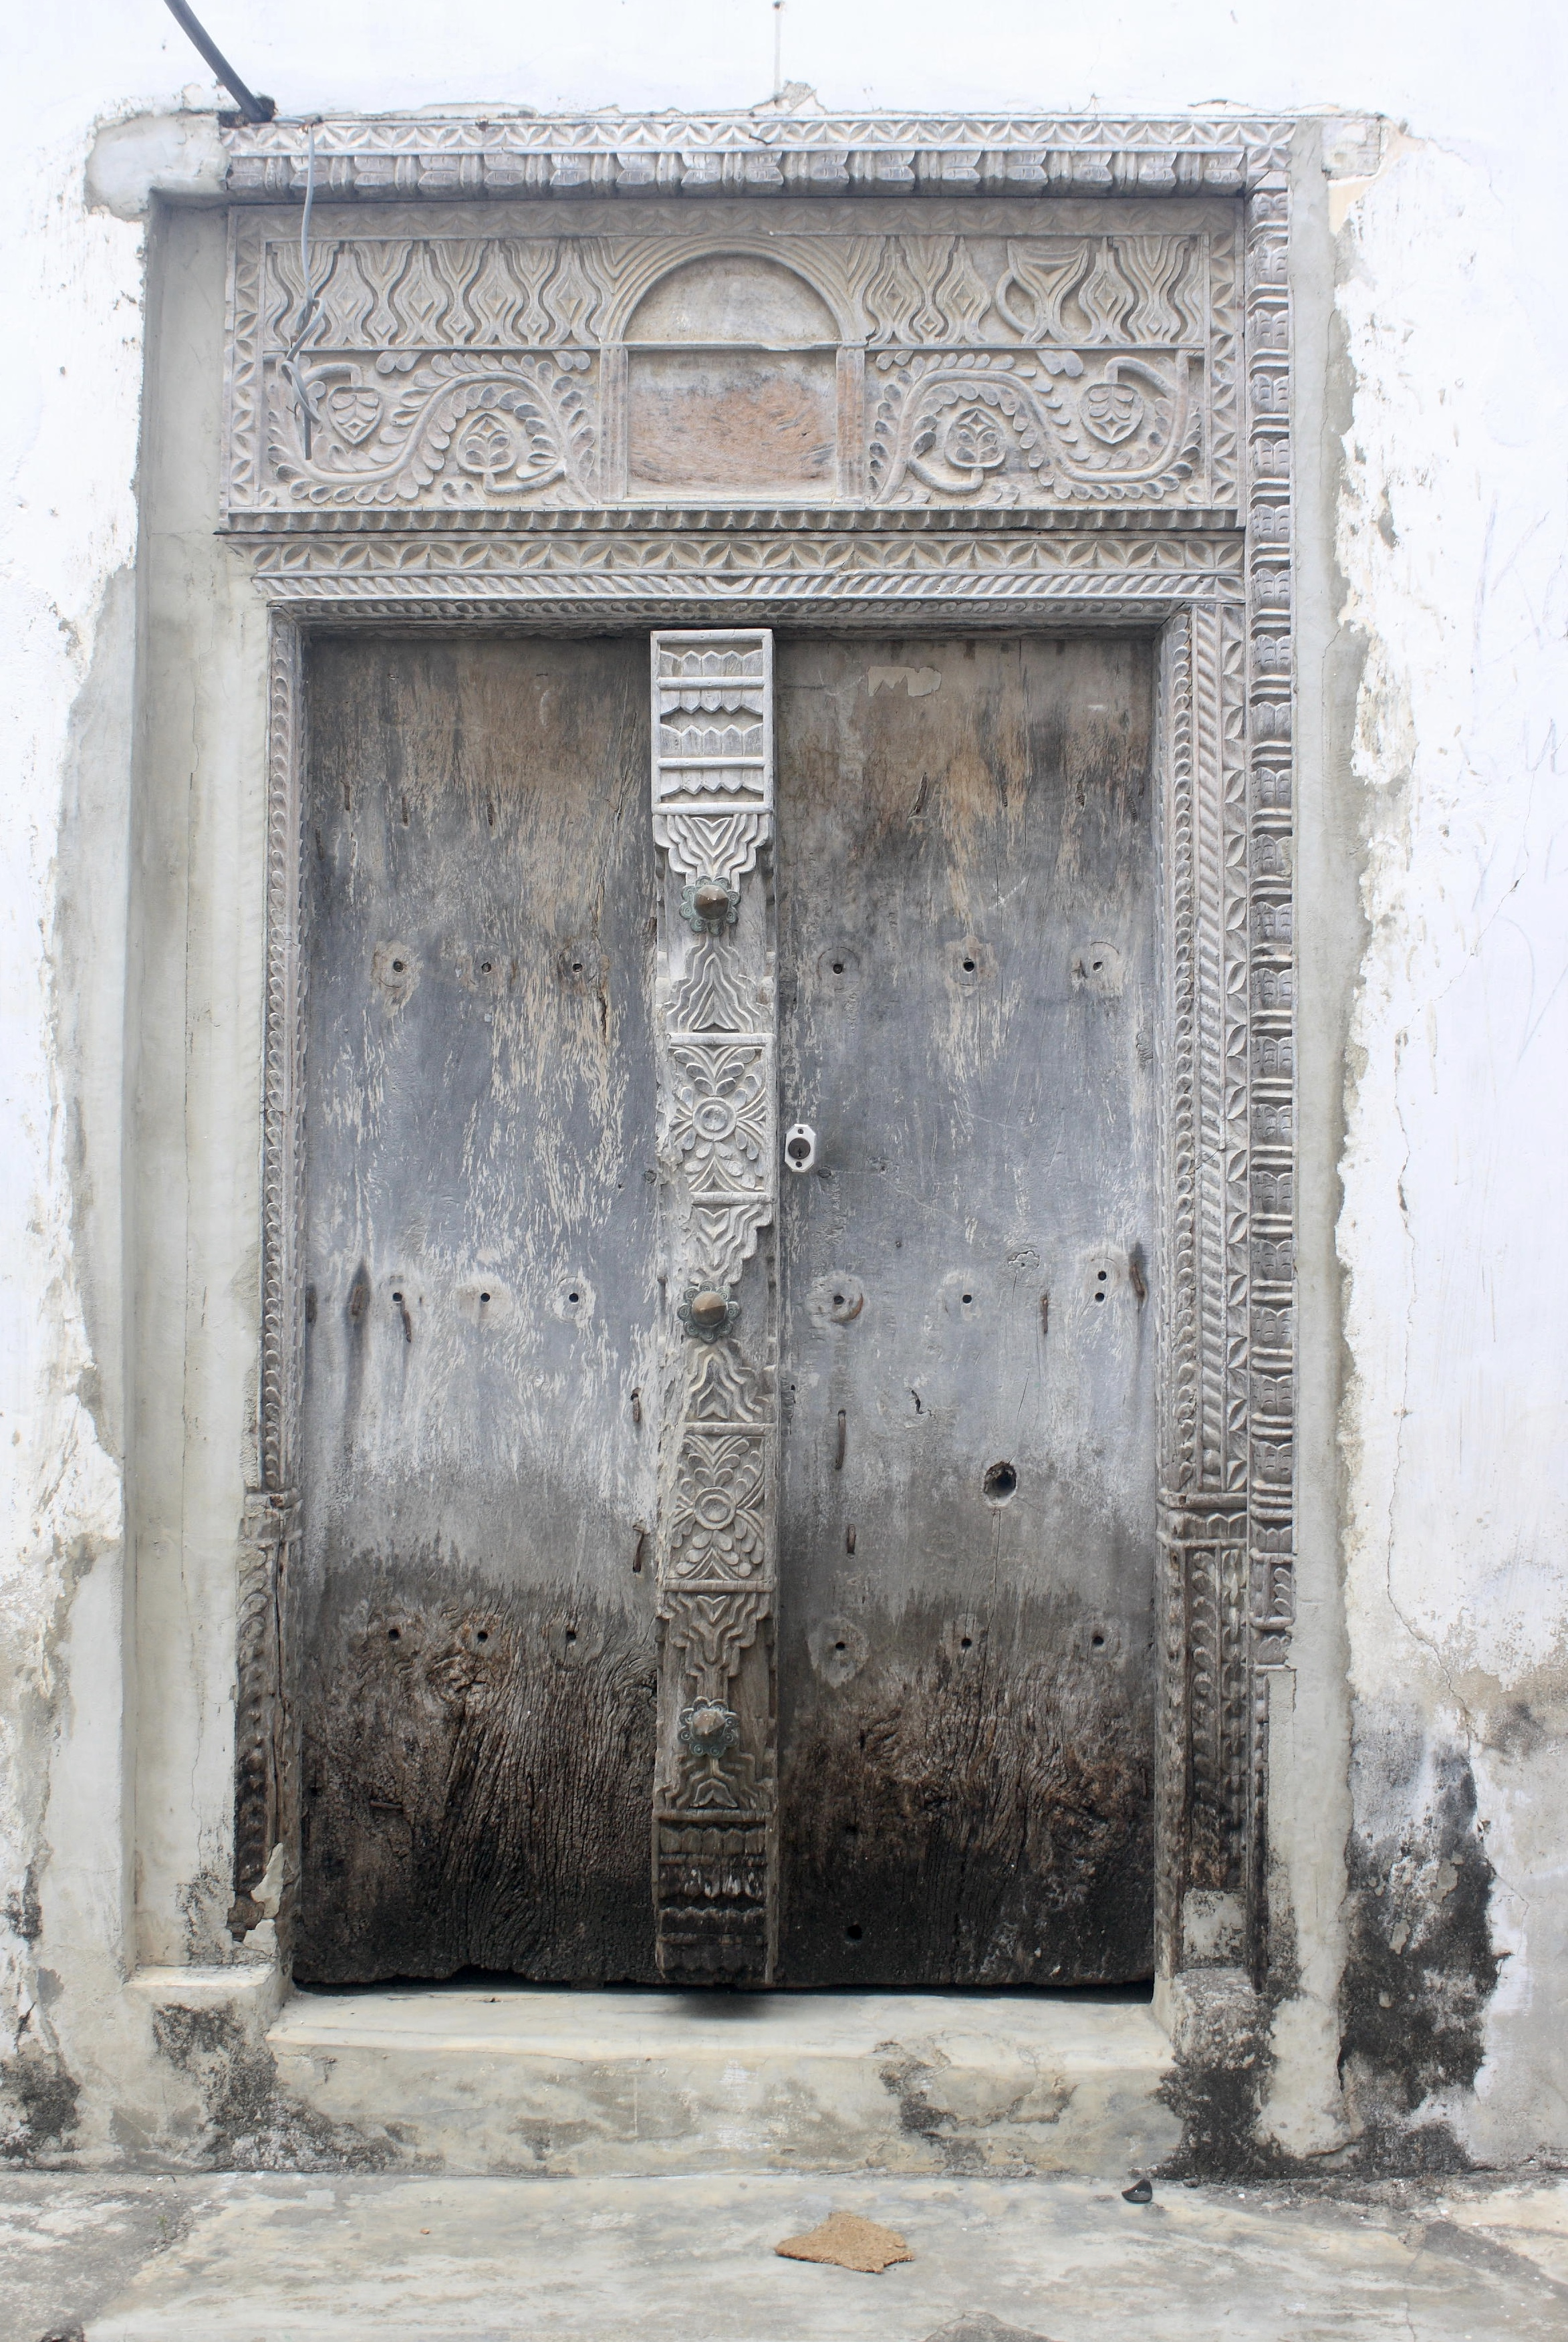 An old Zanzibar door with beautiful carvings